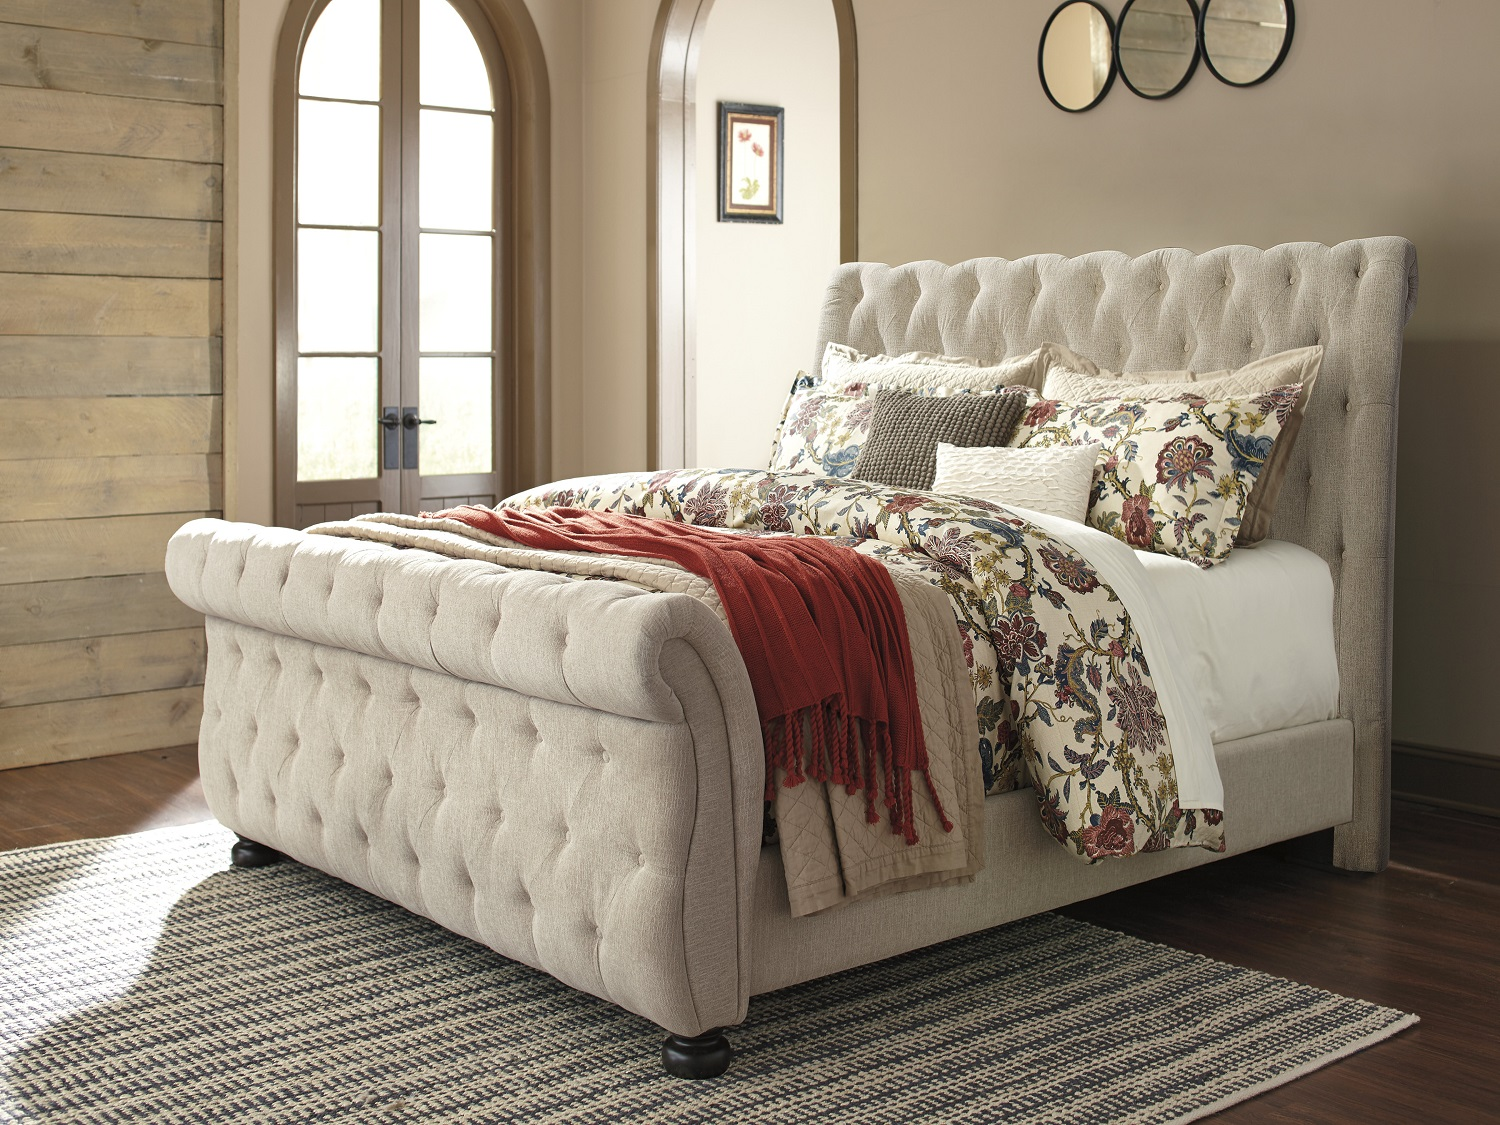 Ashley Willenburg Casual Fabric Upholstery Bed, B643, Beds, Ashley Willenburg Casual Fabric Upholstery Bed from Ashley